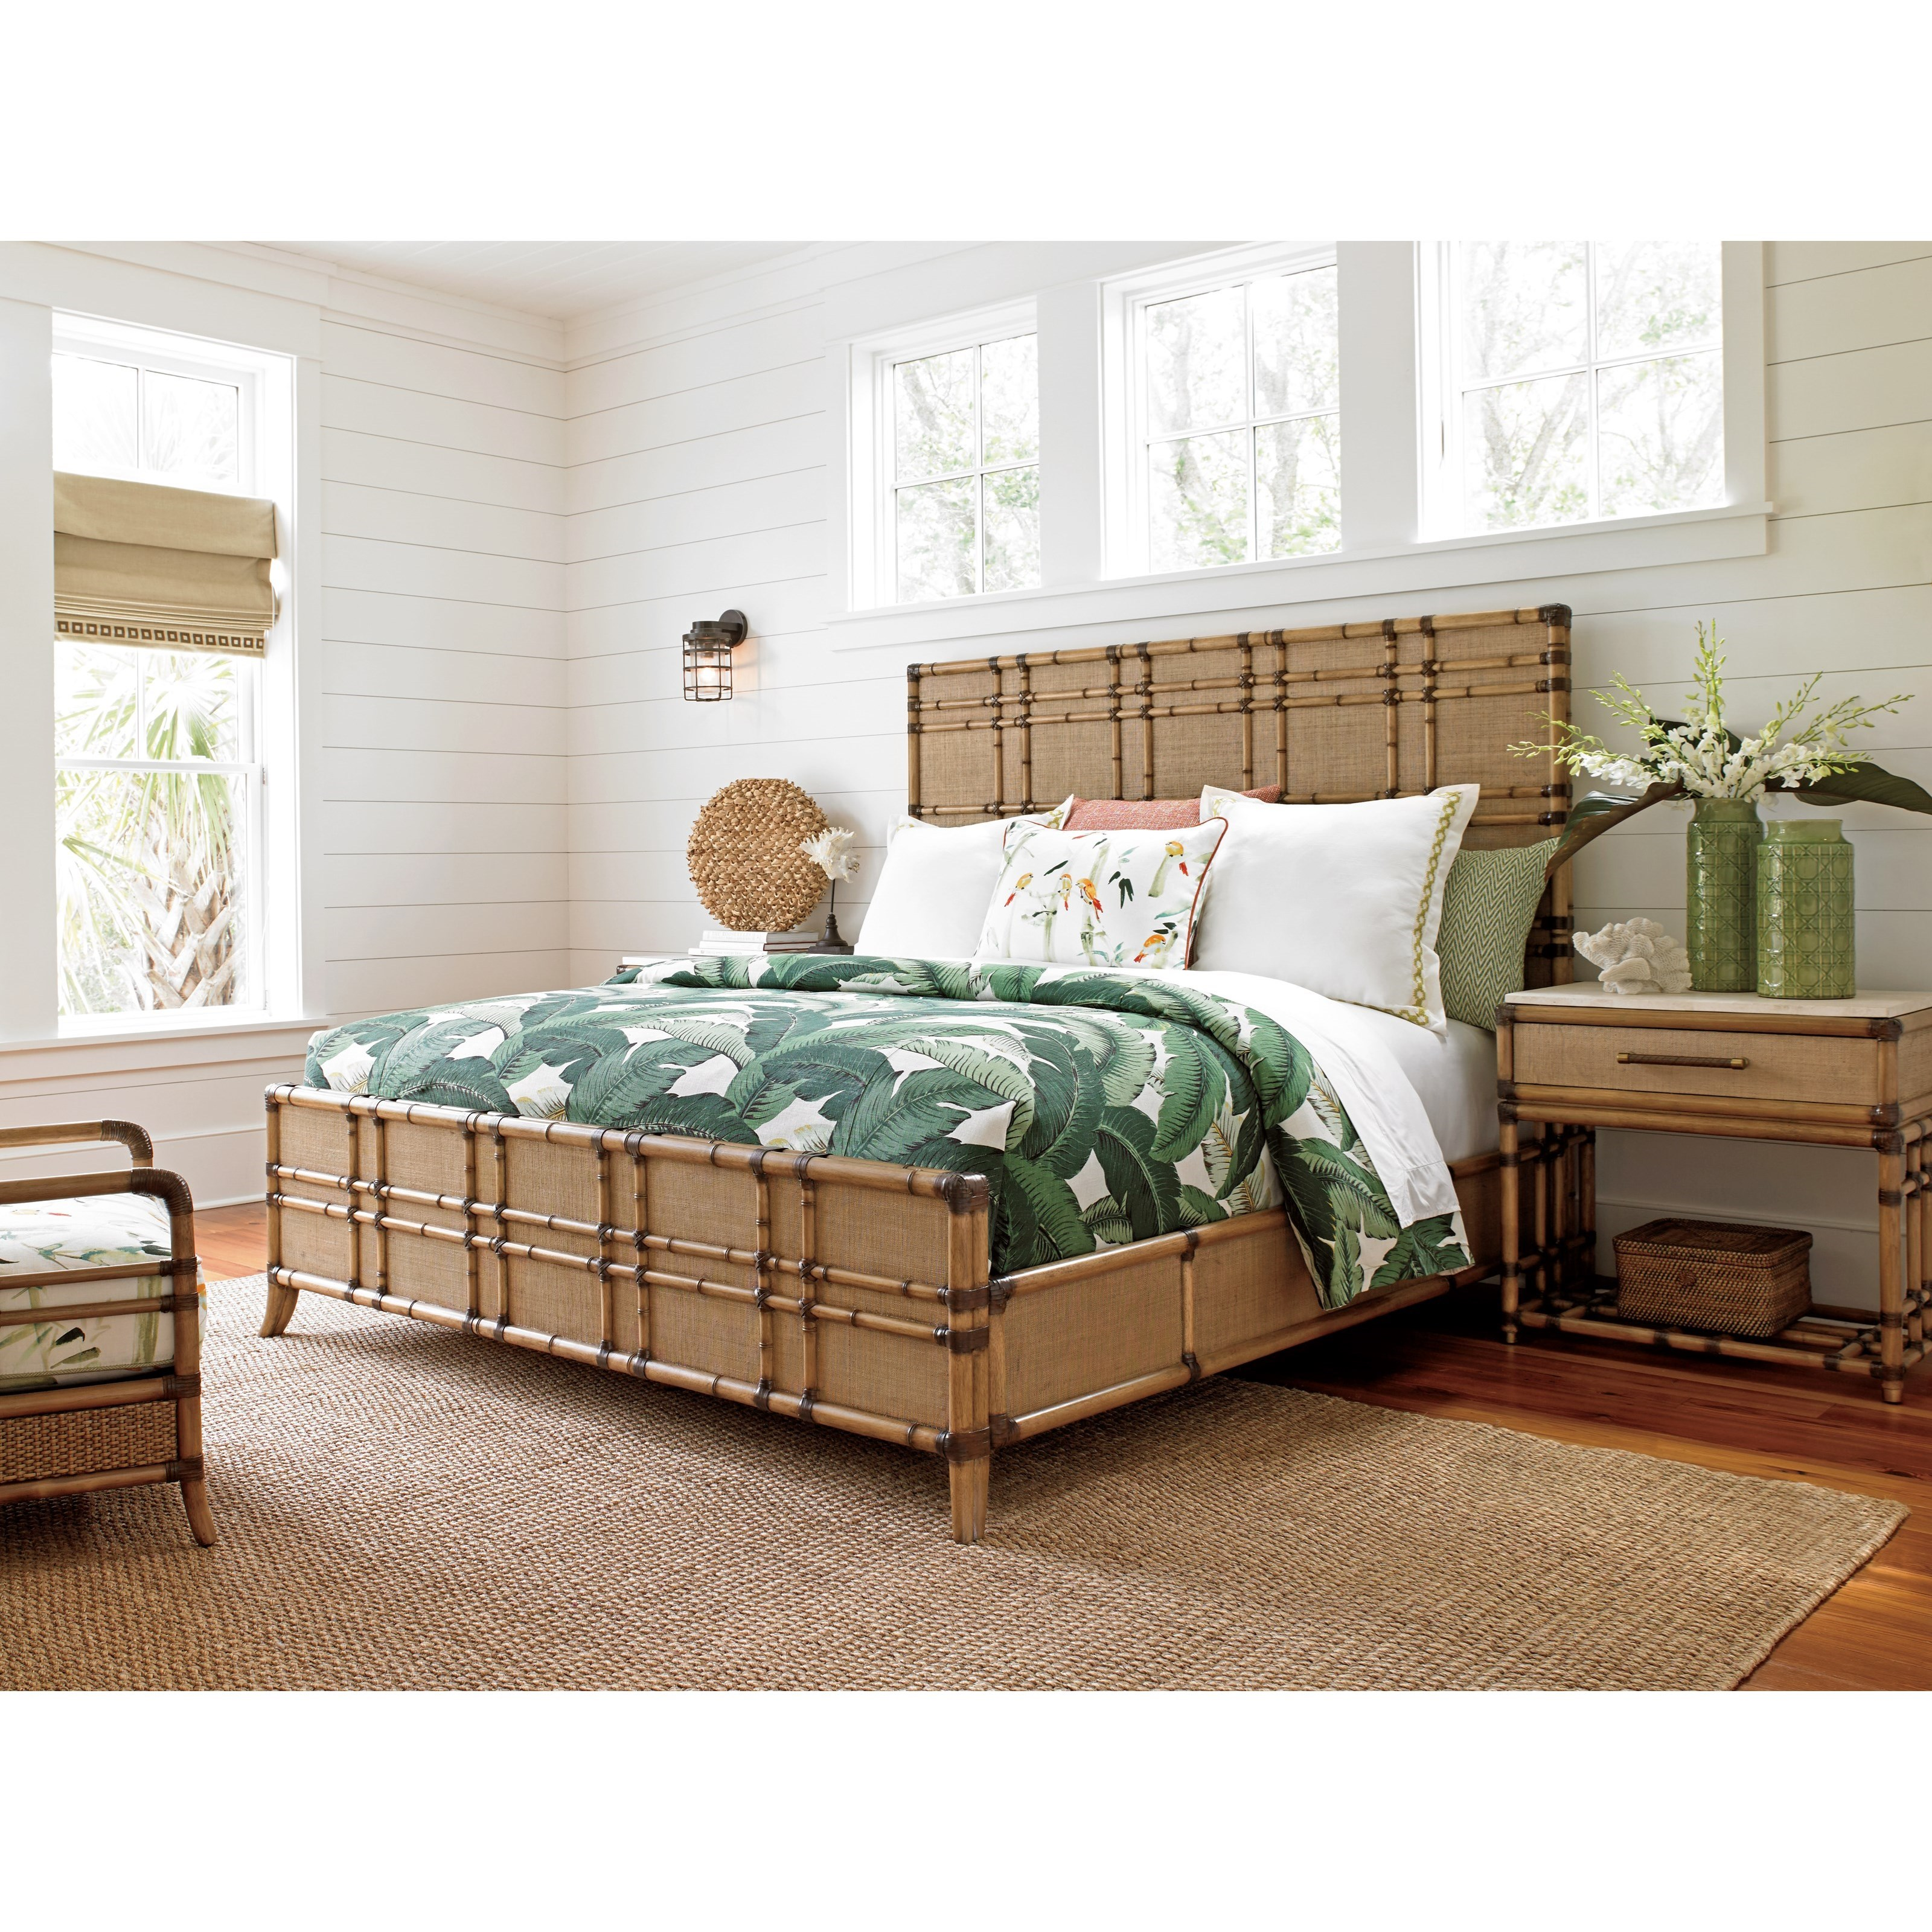 Tommy Bahama Home Twin Palms Queen Bedroom Group Baer 39 S Furniture Bedroom Groups